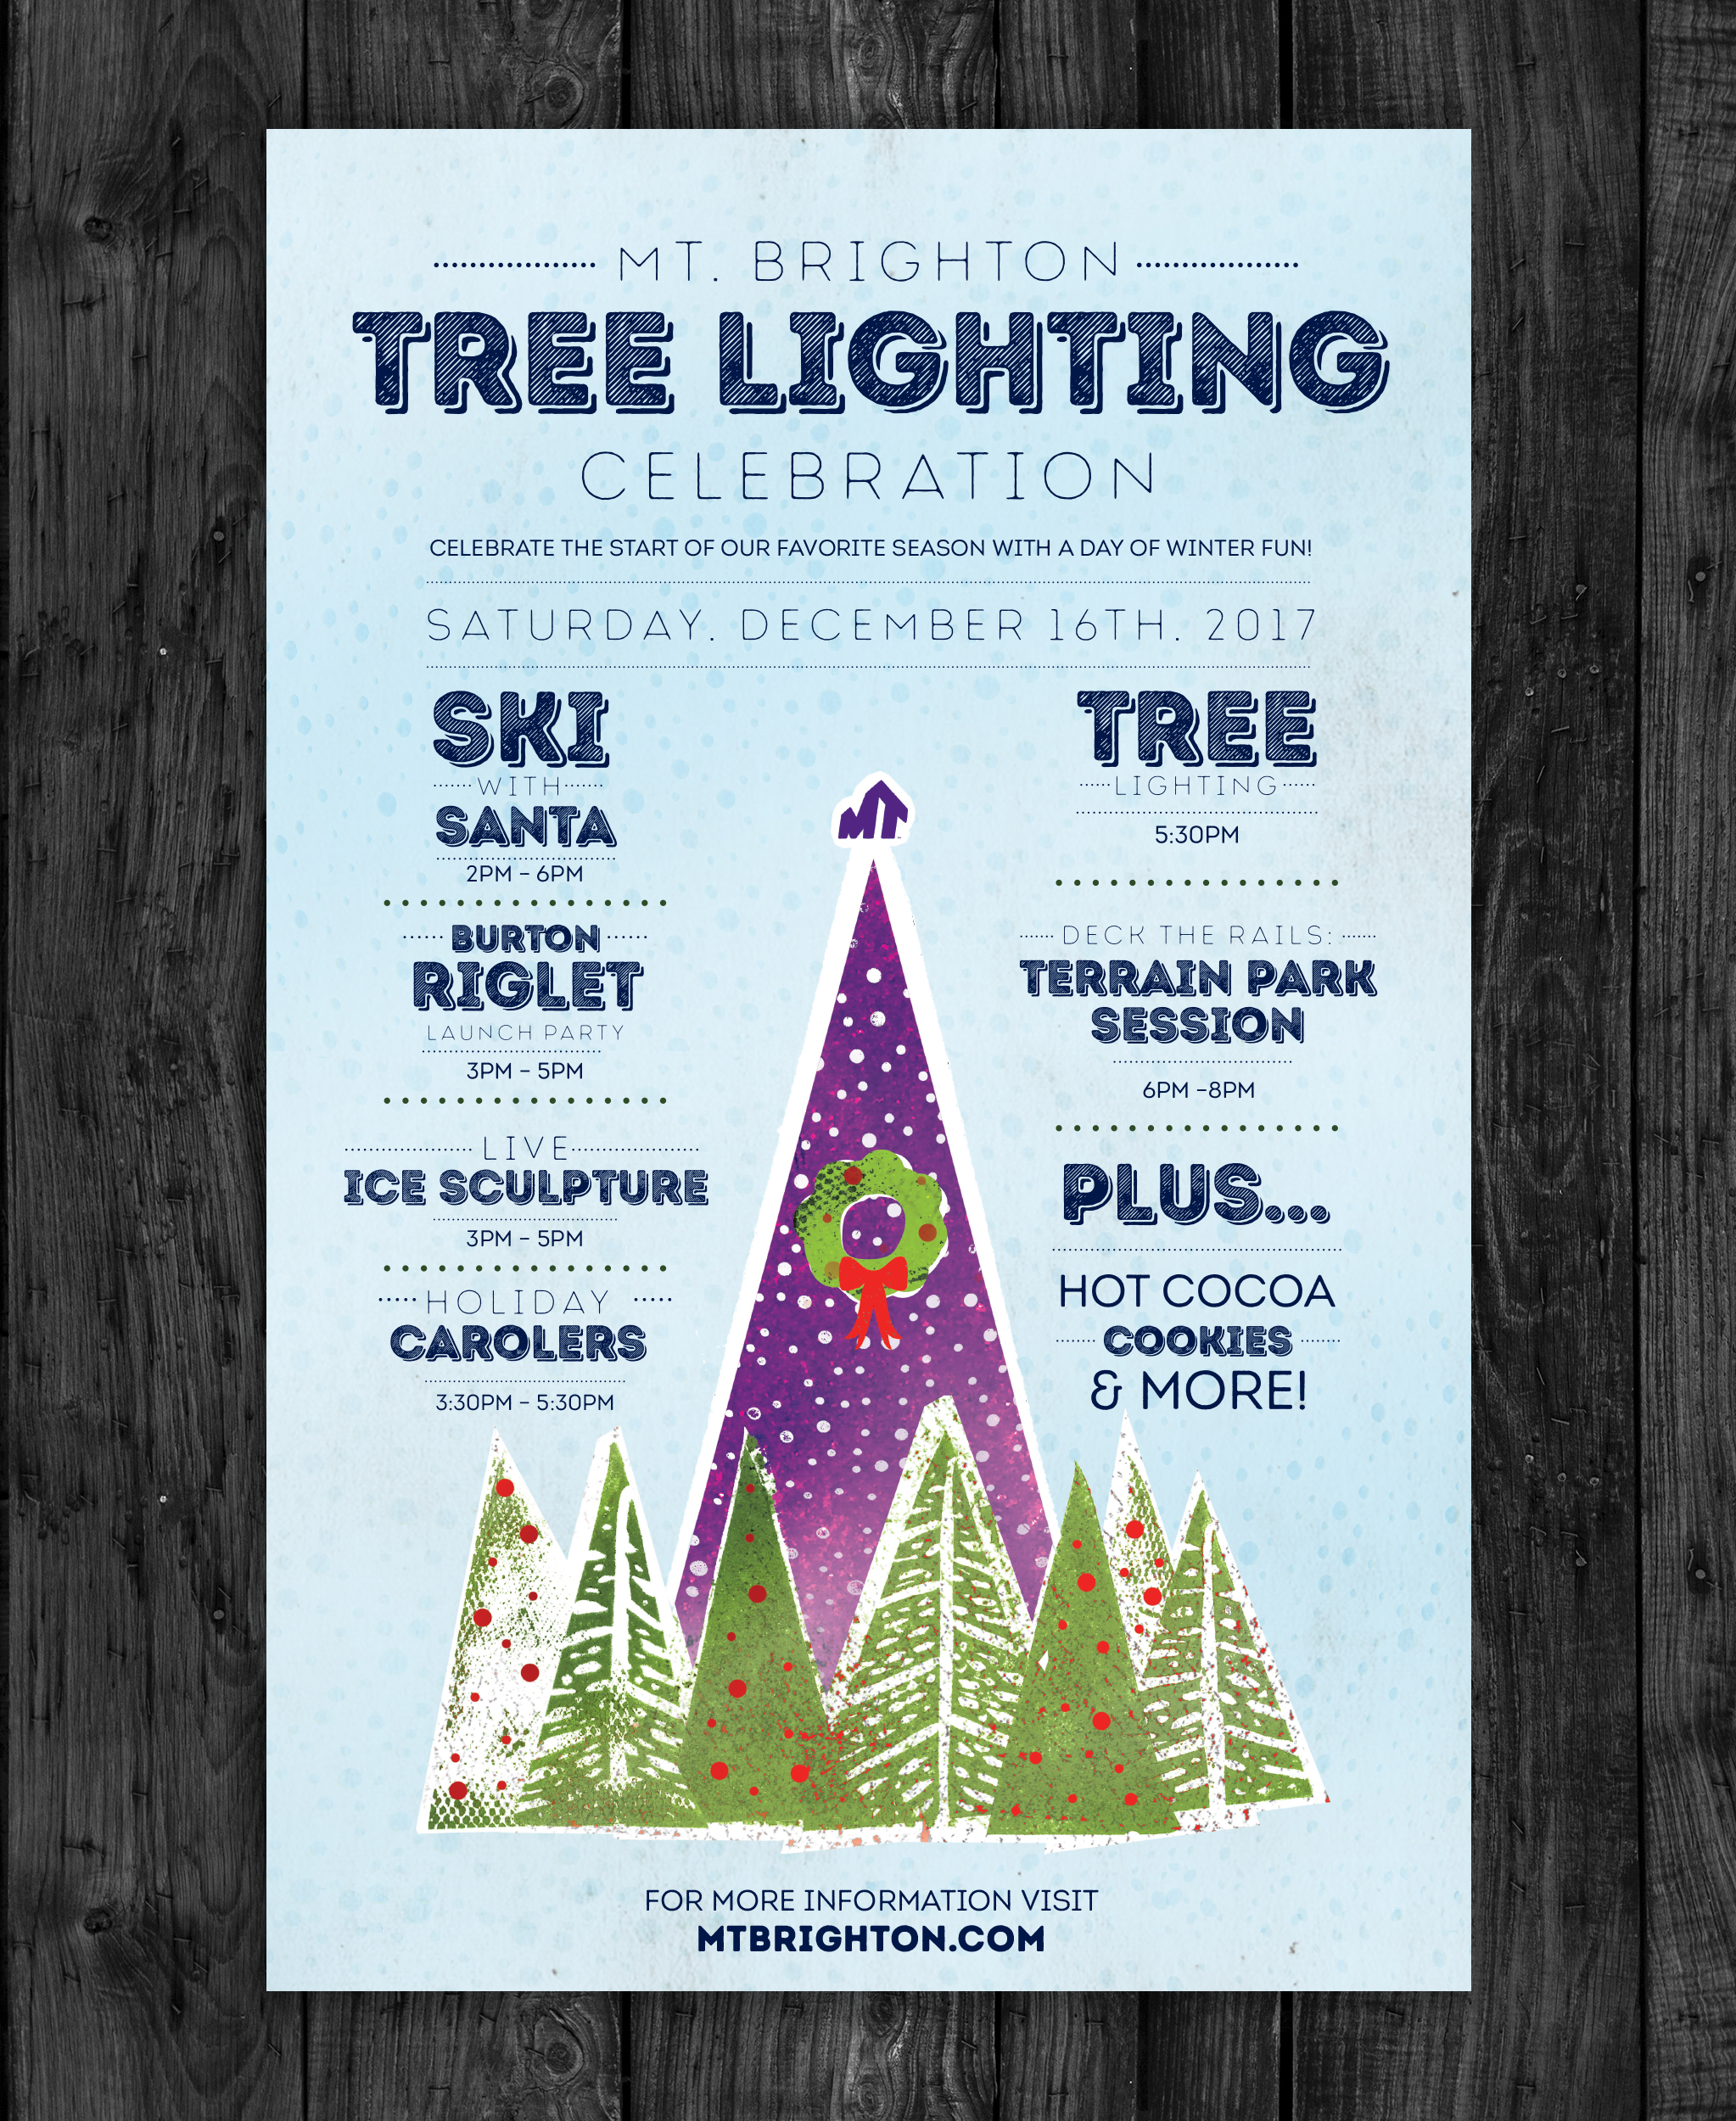 Client:  Mt. Brighton   Objective:  Develop a creative, playful, winter-themed campaign for a celebration at Mt. Brighton ski resort in Southeast Michigan.